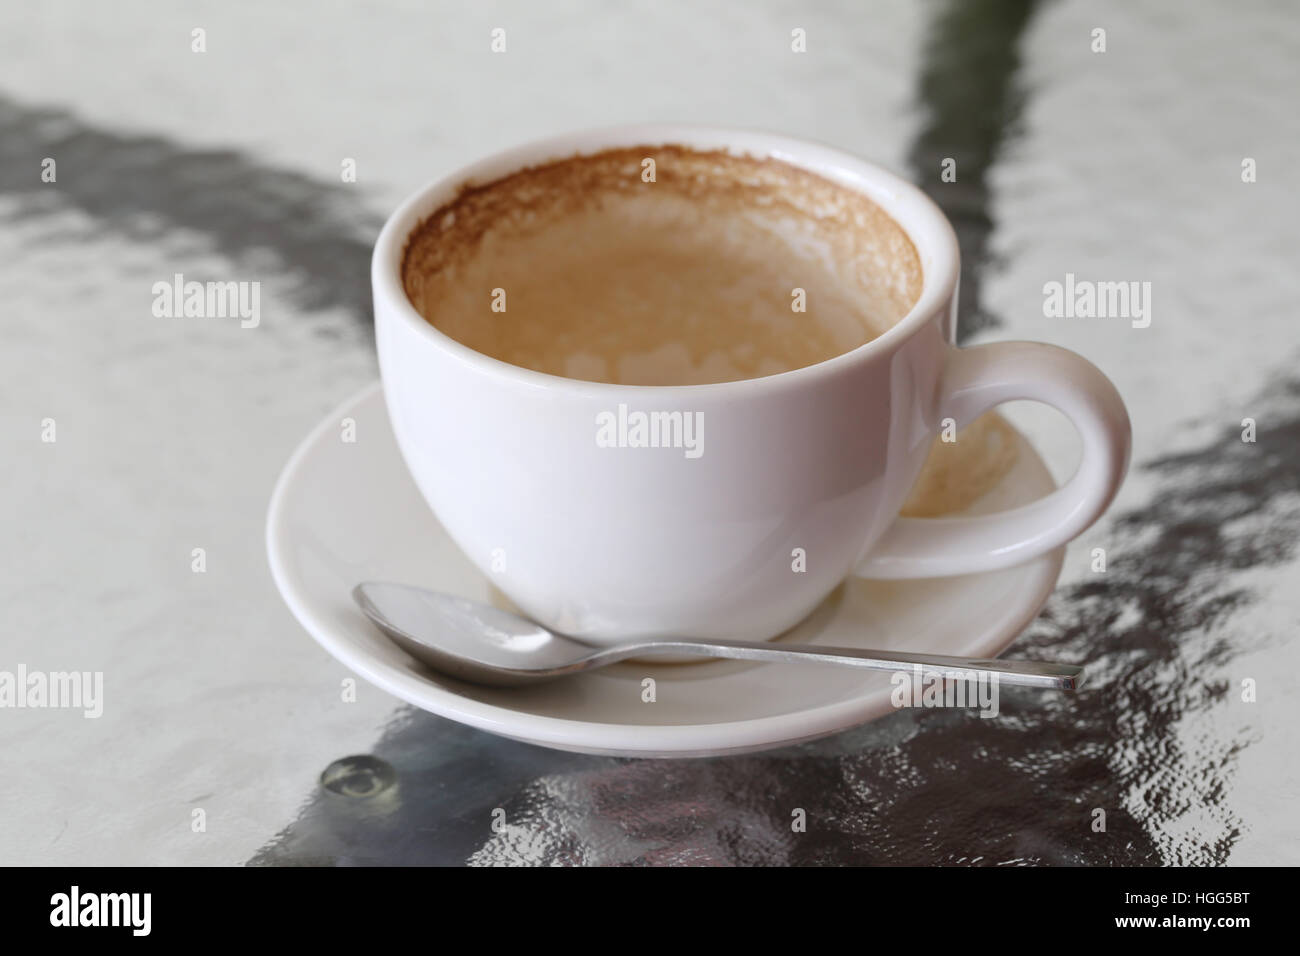 Mug A Cafe White Coffee Mug With Coffee Stains On Table In A Cafe Stock Photo